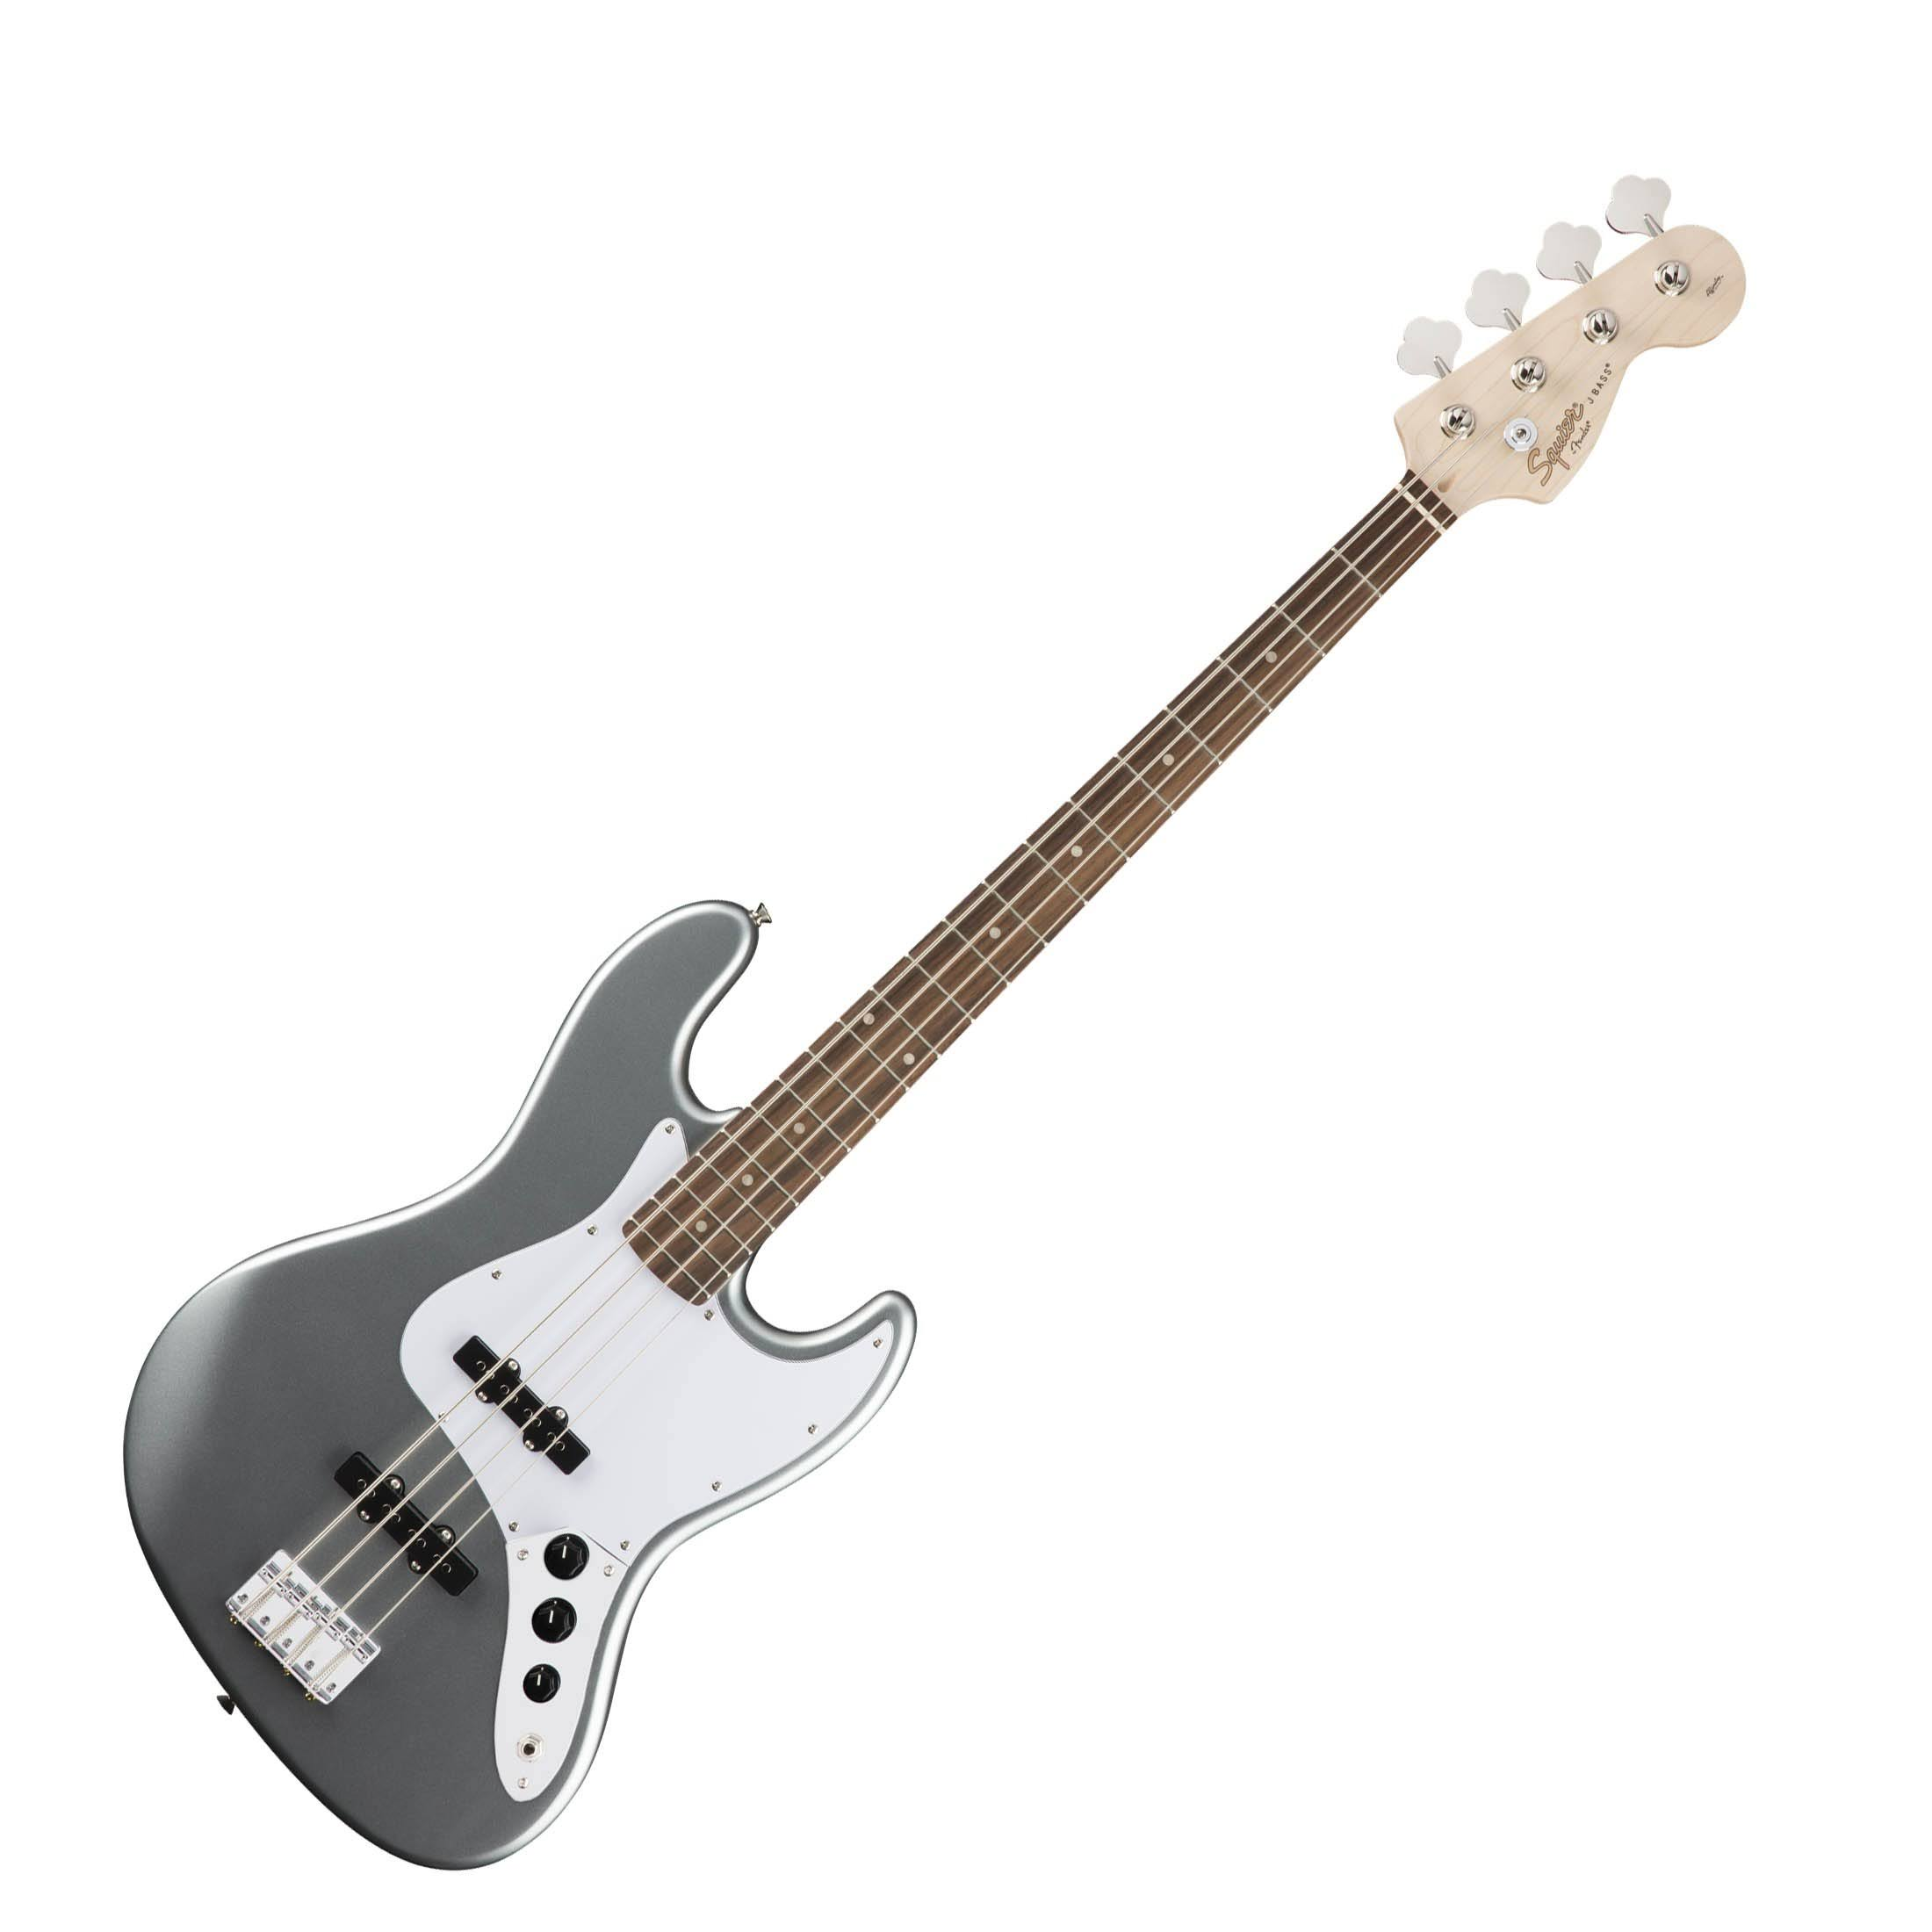 Squier Affinity Series Jazz Bass, Slick Silver